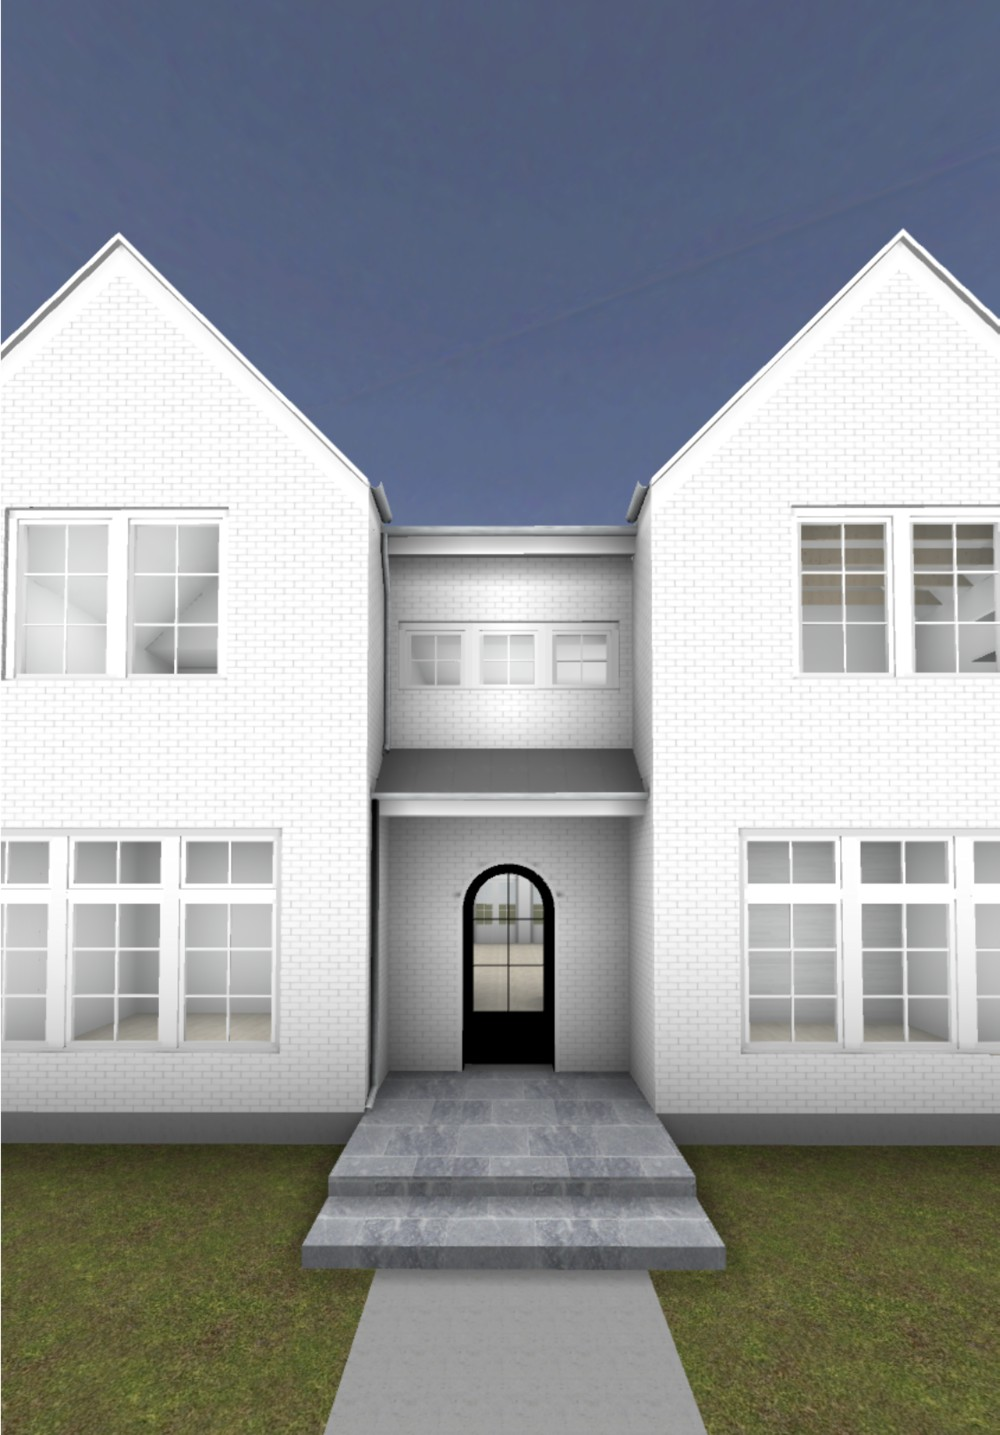 Renderings are by  Lloyd Architects .